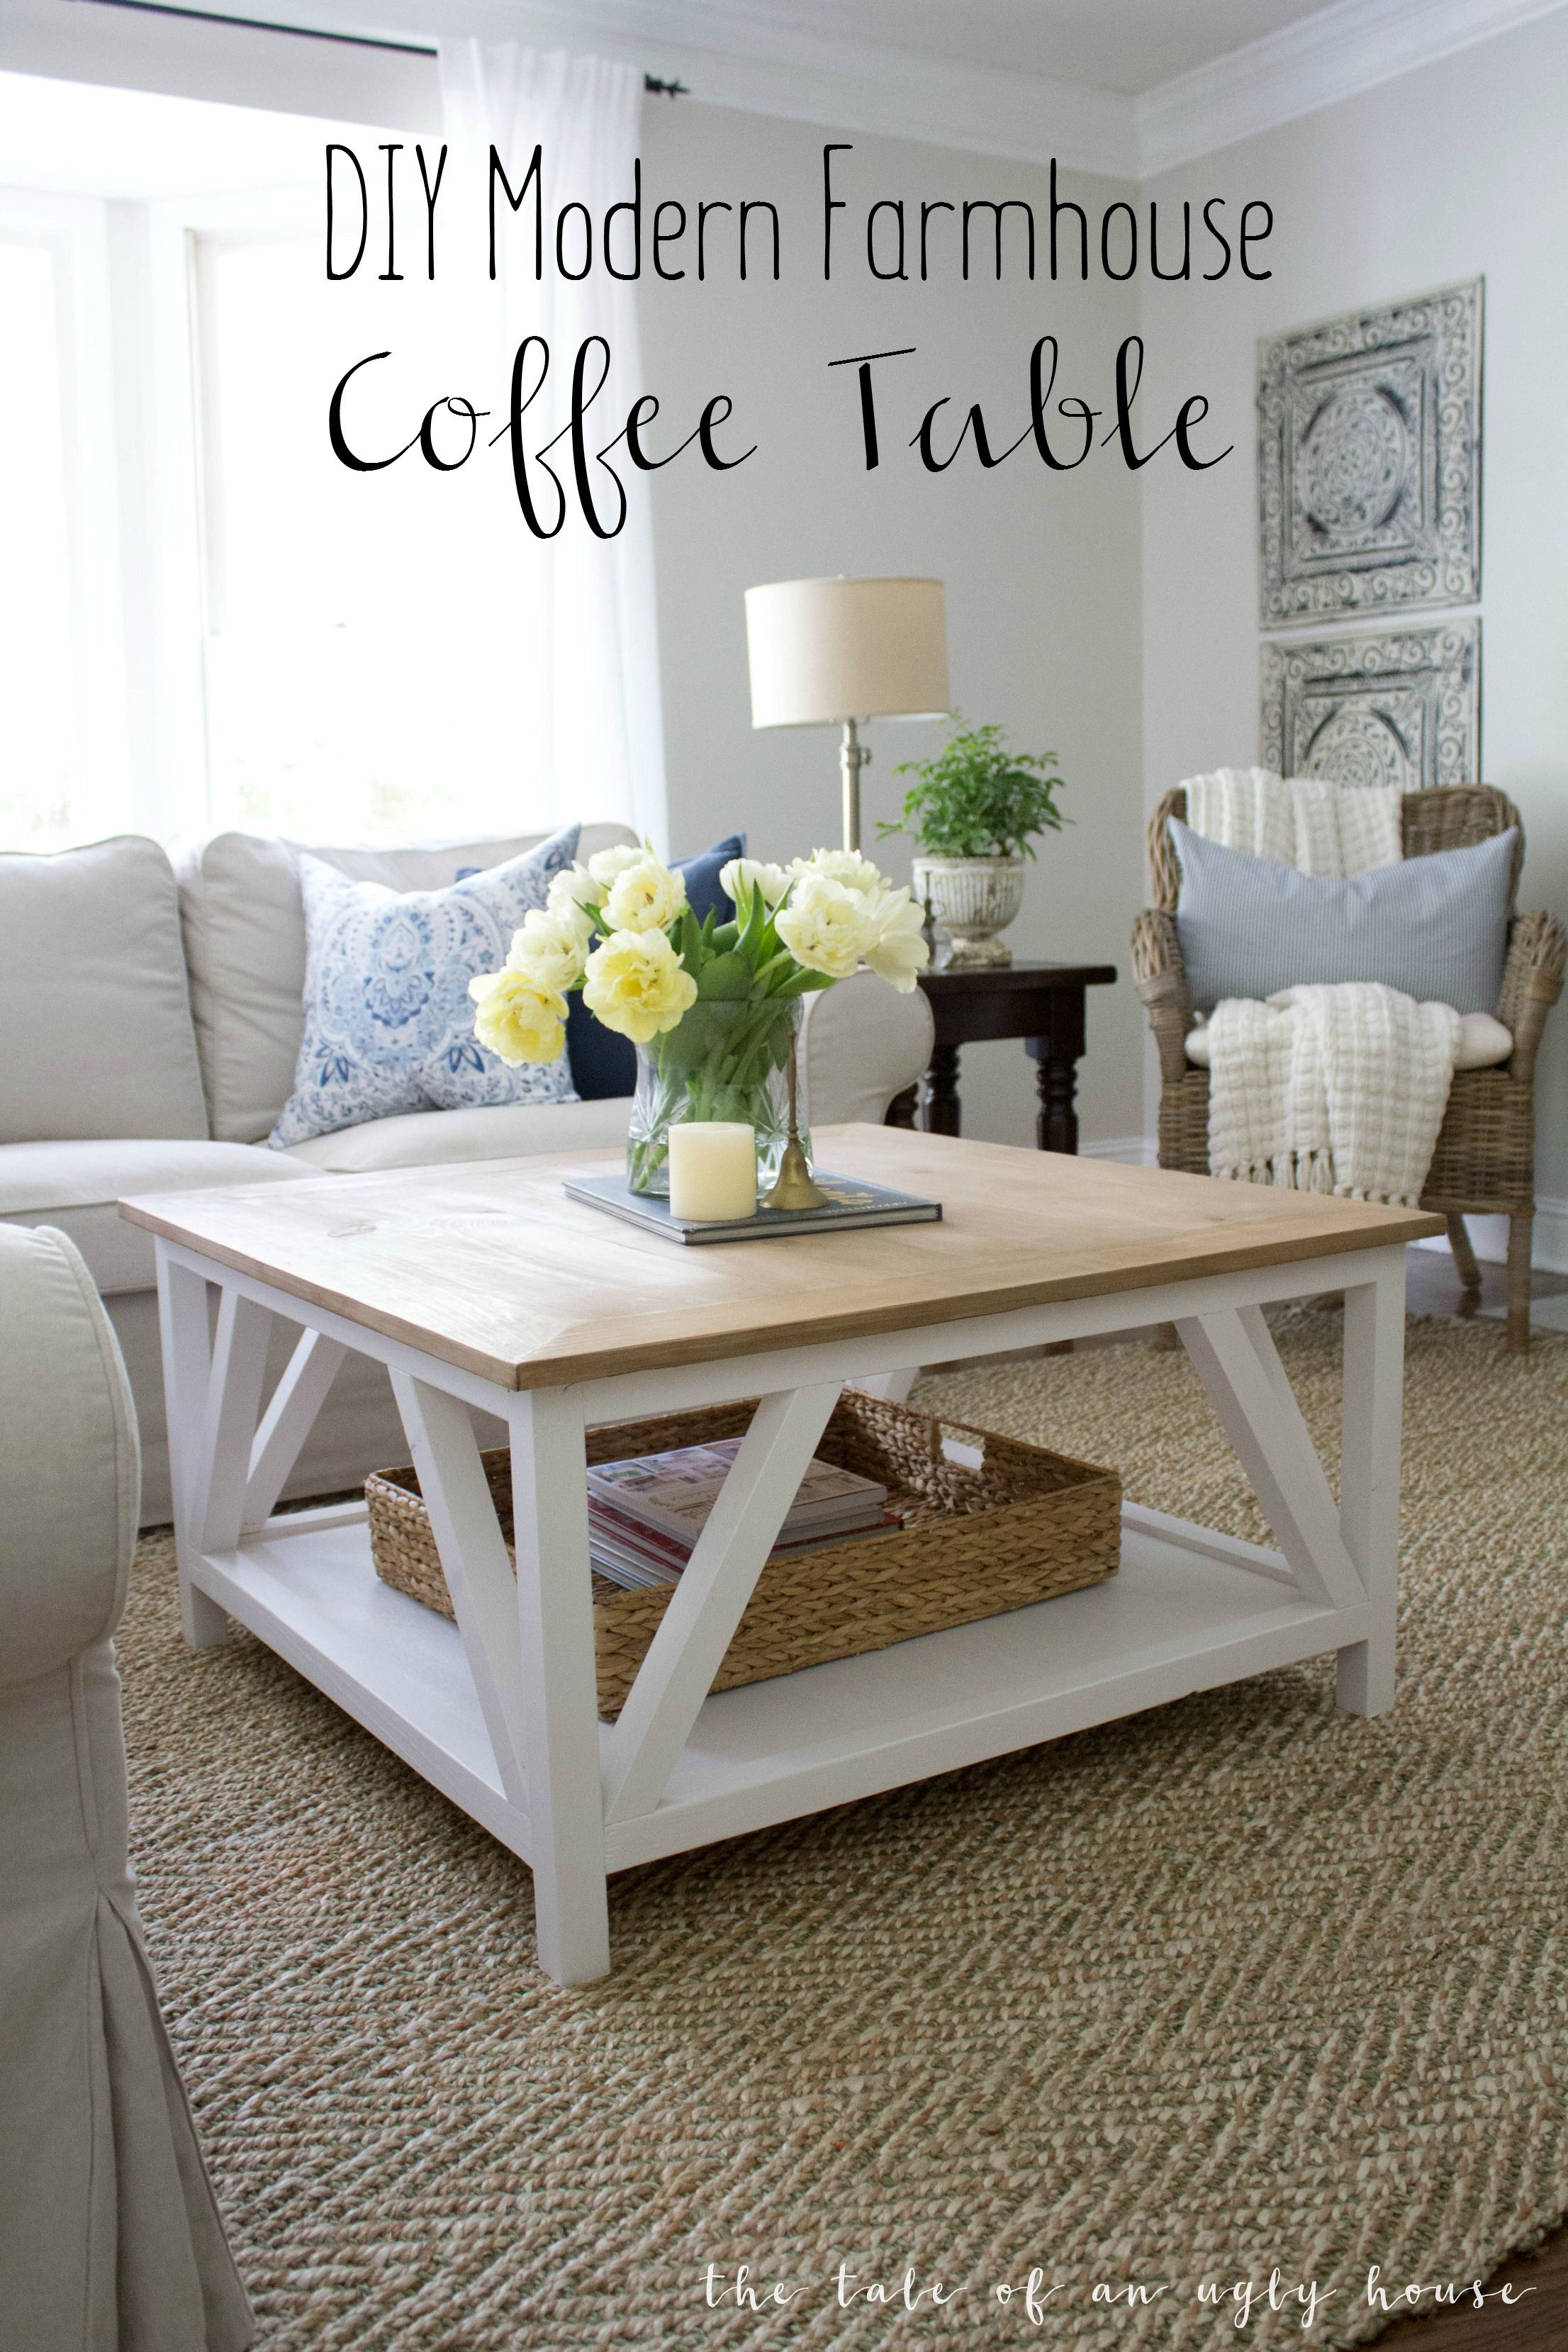 How To Build A Diy Modern Farmhouse Coffee Table Clic Square With Painted Base And Rustic Stained Top Complete Bottom Shelf